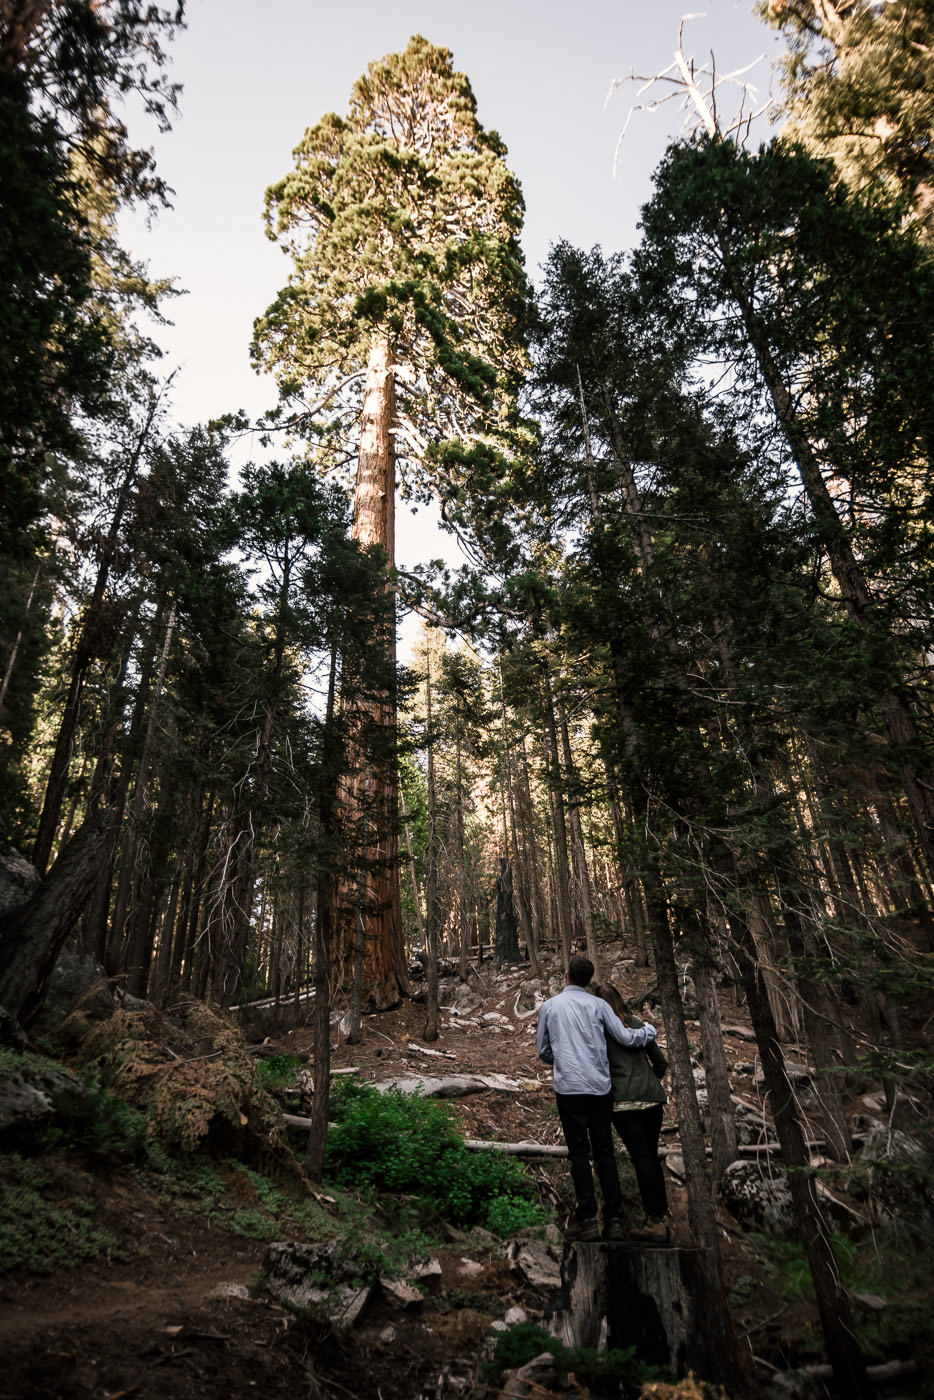 Couple stands in awe of a towering giant of a tree in Sequoia National Park.